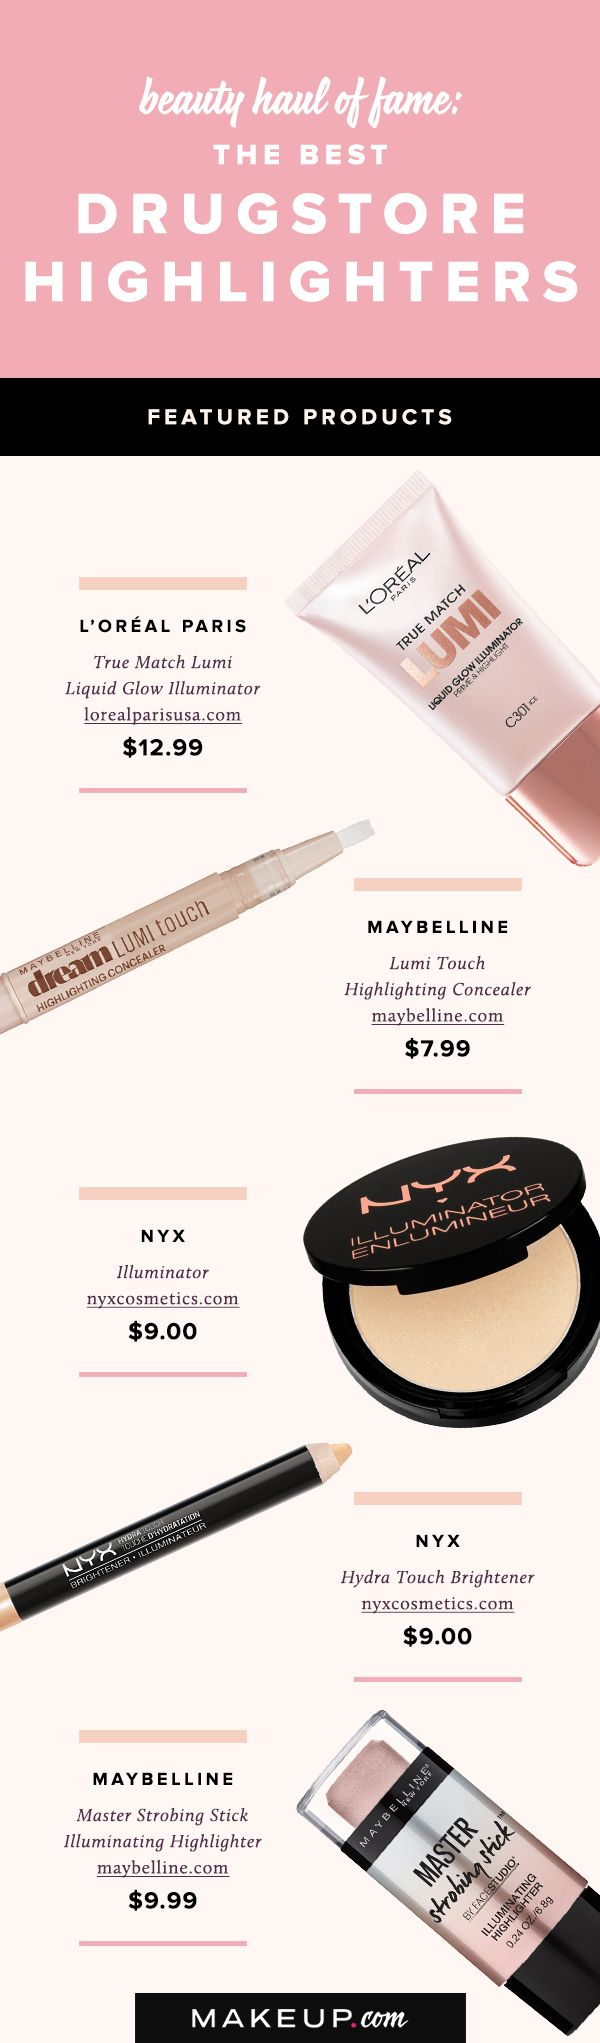 The Best Drugstore Highlighters